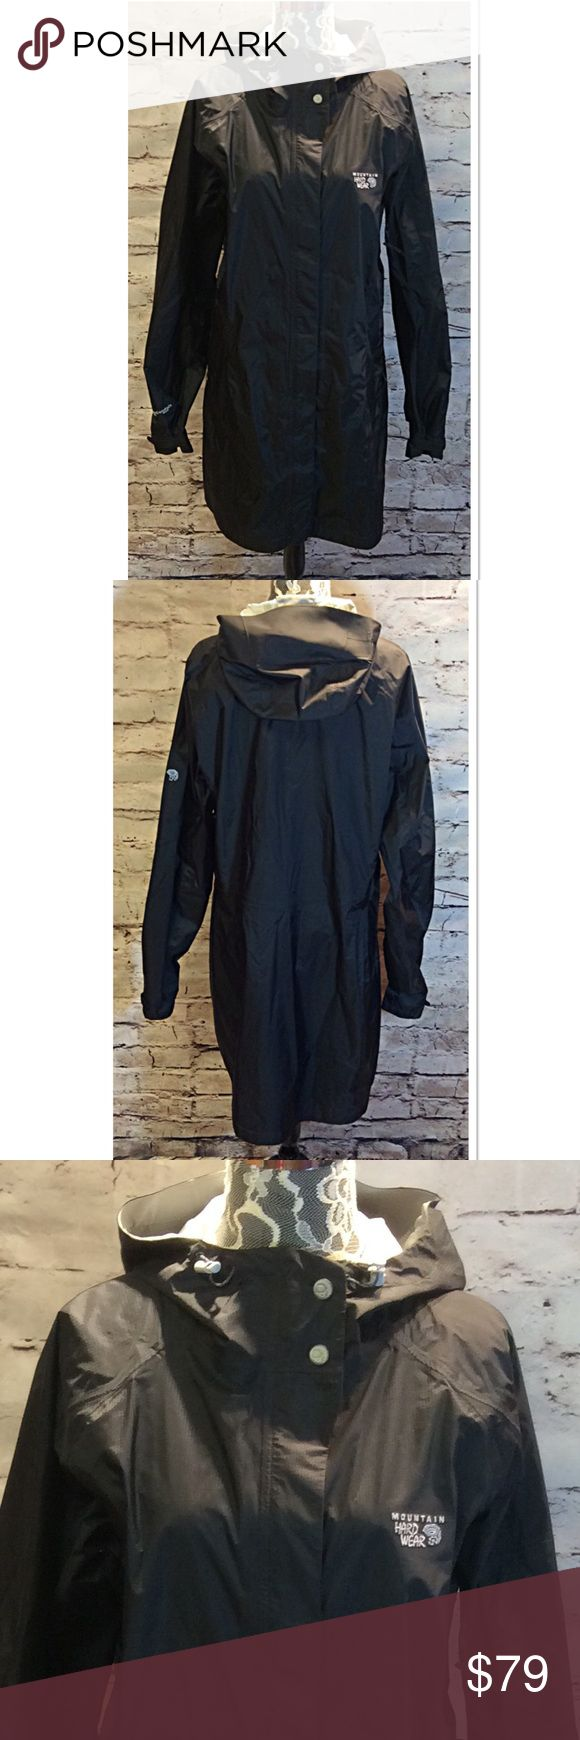 XL MOUNTAIN HARD WEAR BLACK LONG RAIN JACKET Awesome rain parka that's lightweight with a tuck away hood and zip pockets on the sides and arm. Zip and Velcro closure with bungee pulls to tight the hood to a snug fit. Like new Mountain Hard Wear Jackets & Coats Trench Coats